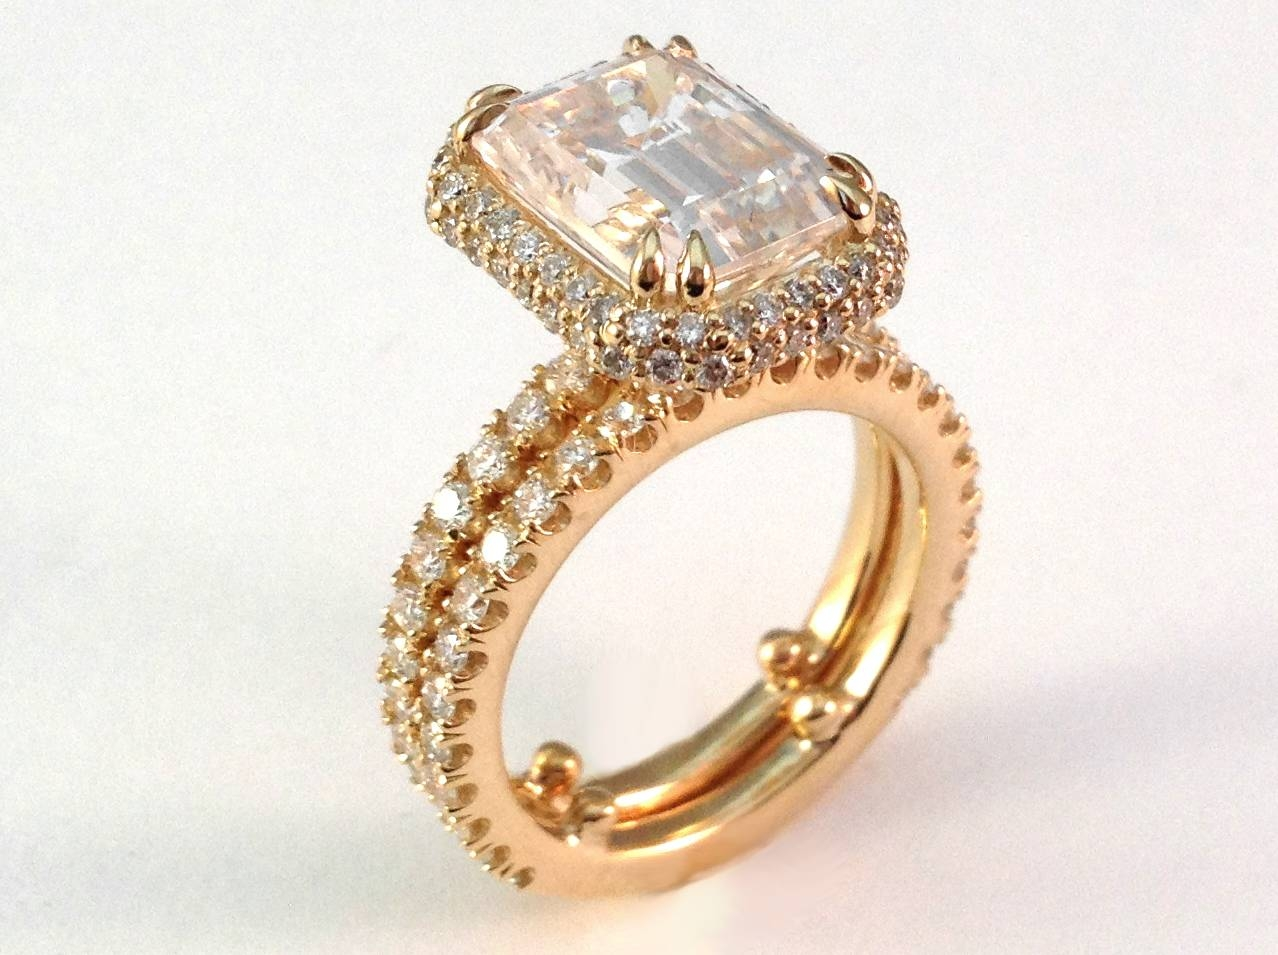 Engagement Ring Emerald Cut Diamond Halo Bridal Set In 14k Yellow In Molly Sims Wedding Rings (View 3 of 15)